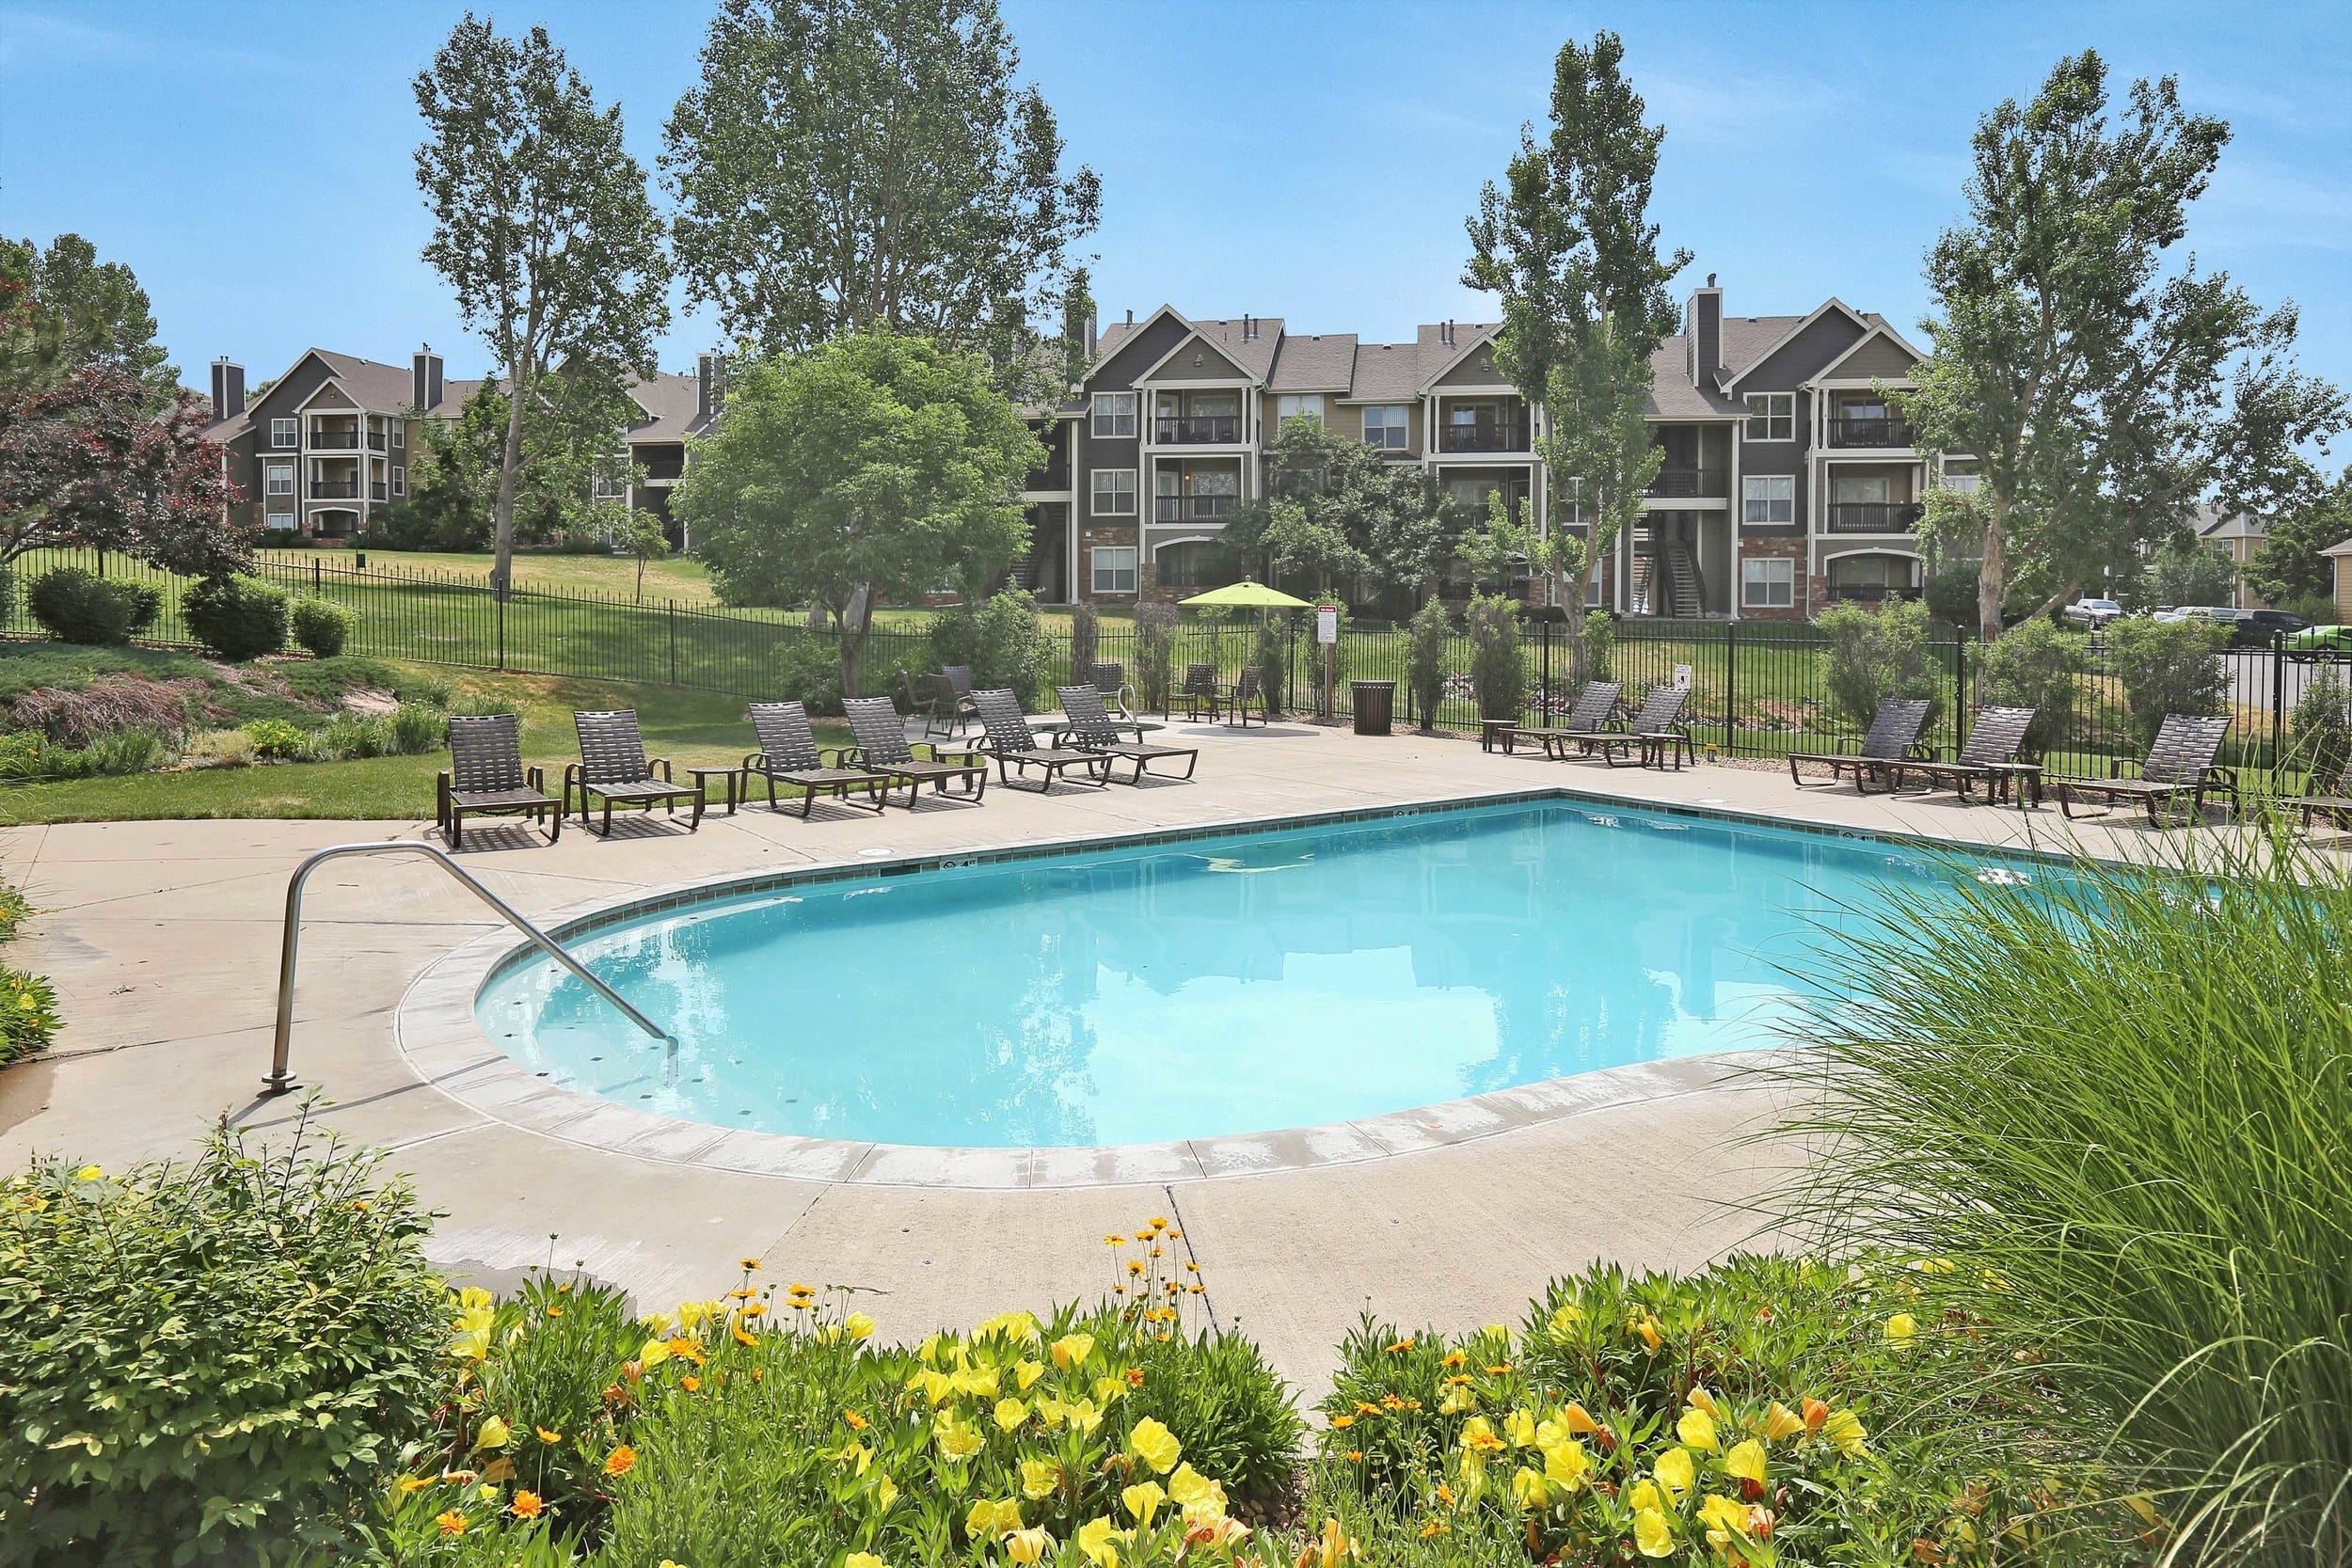 Swimming pool at The Pines at Castle Rock Apartments in Castle Rock, Colorado